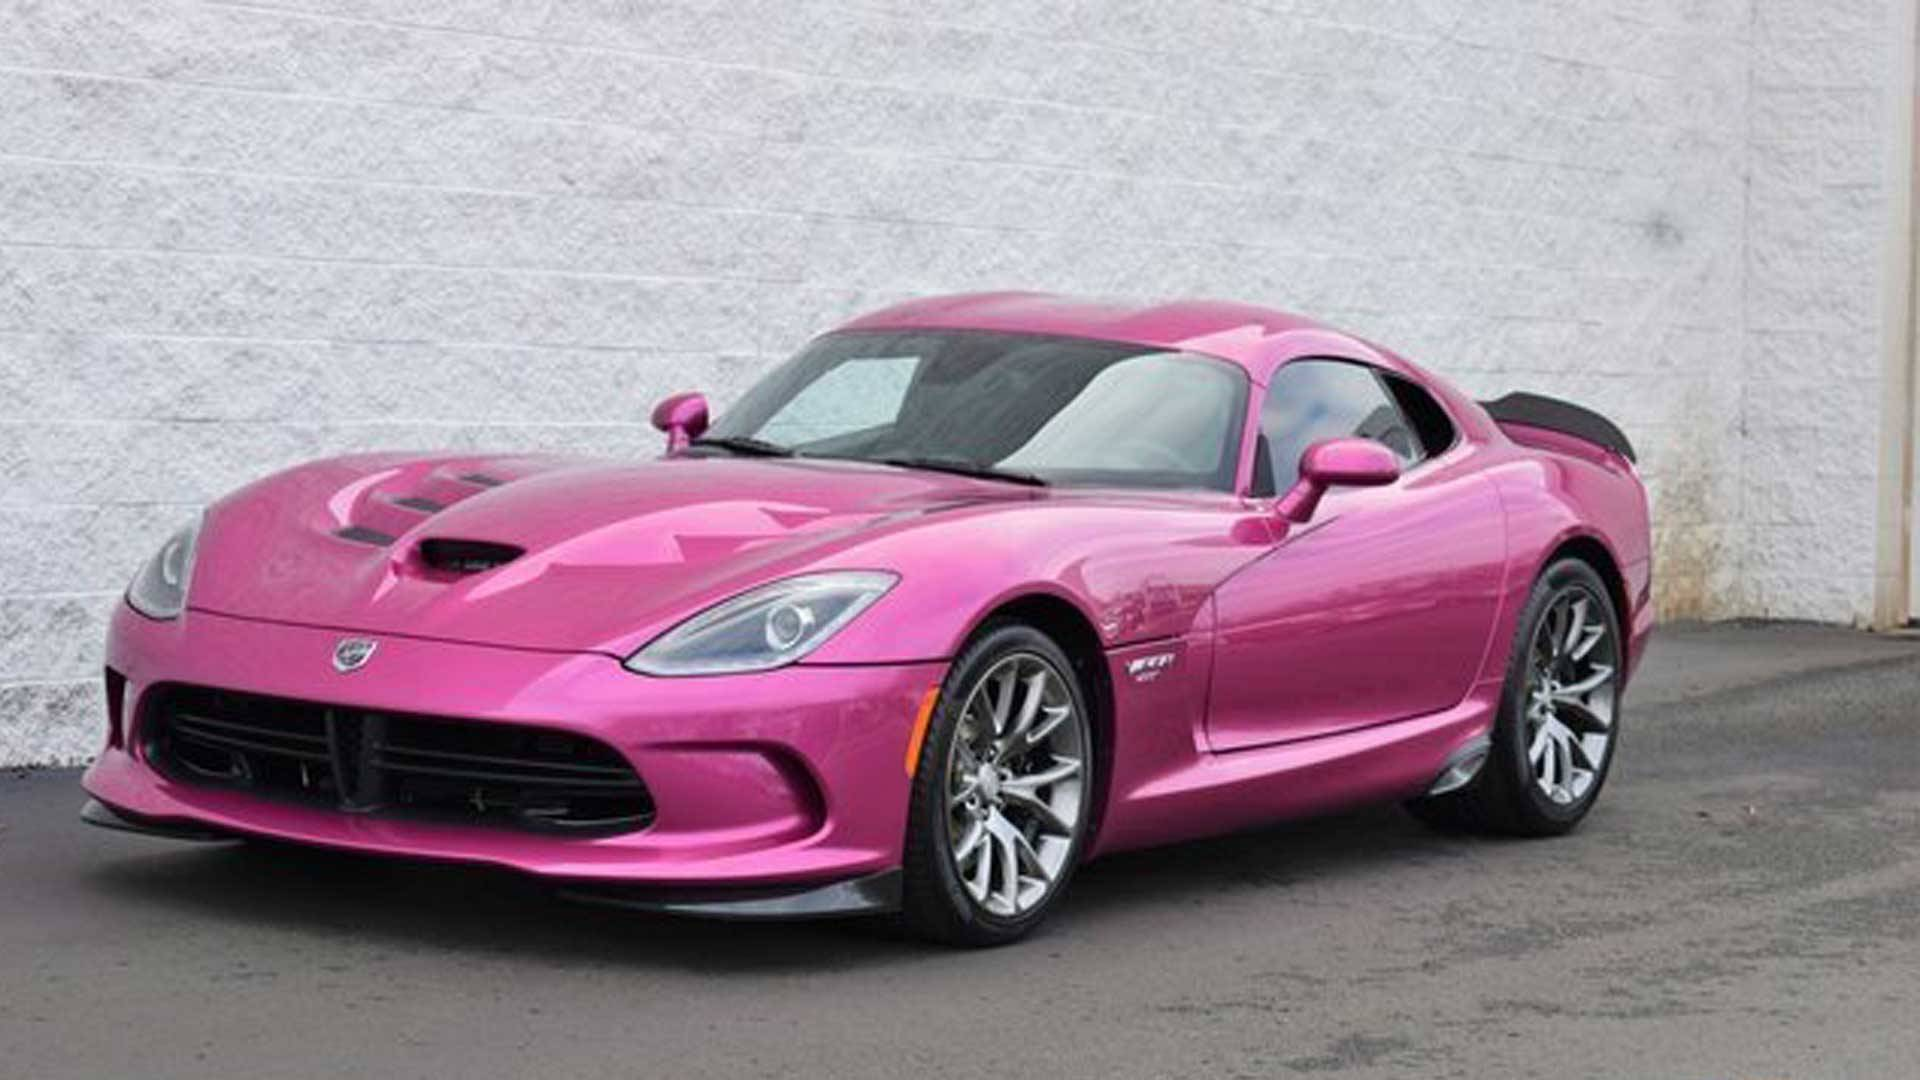 2017_Dodge_Viper_Metallic_Pink_0013